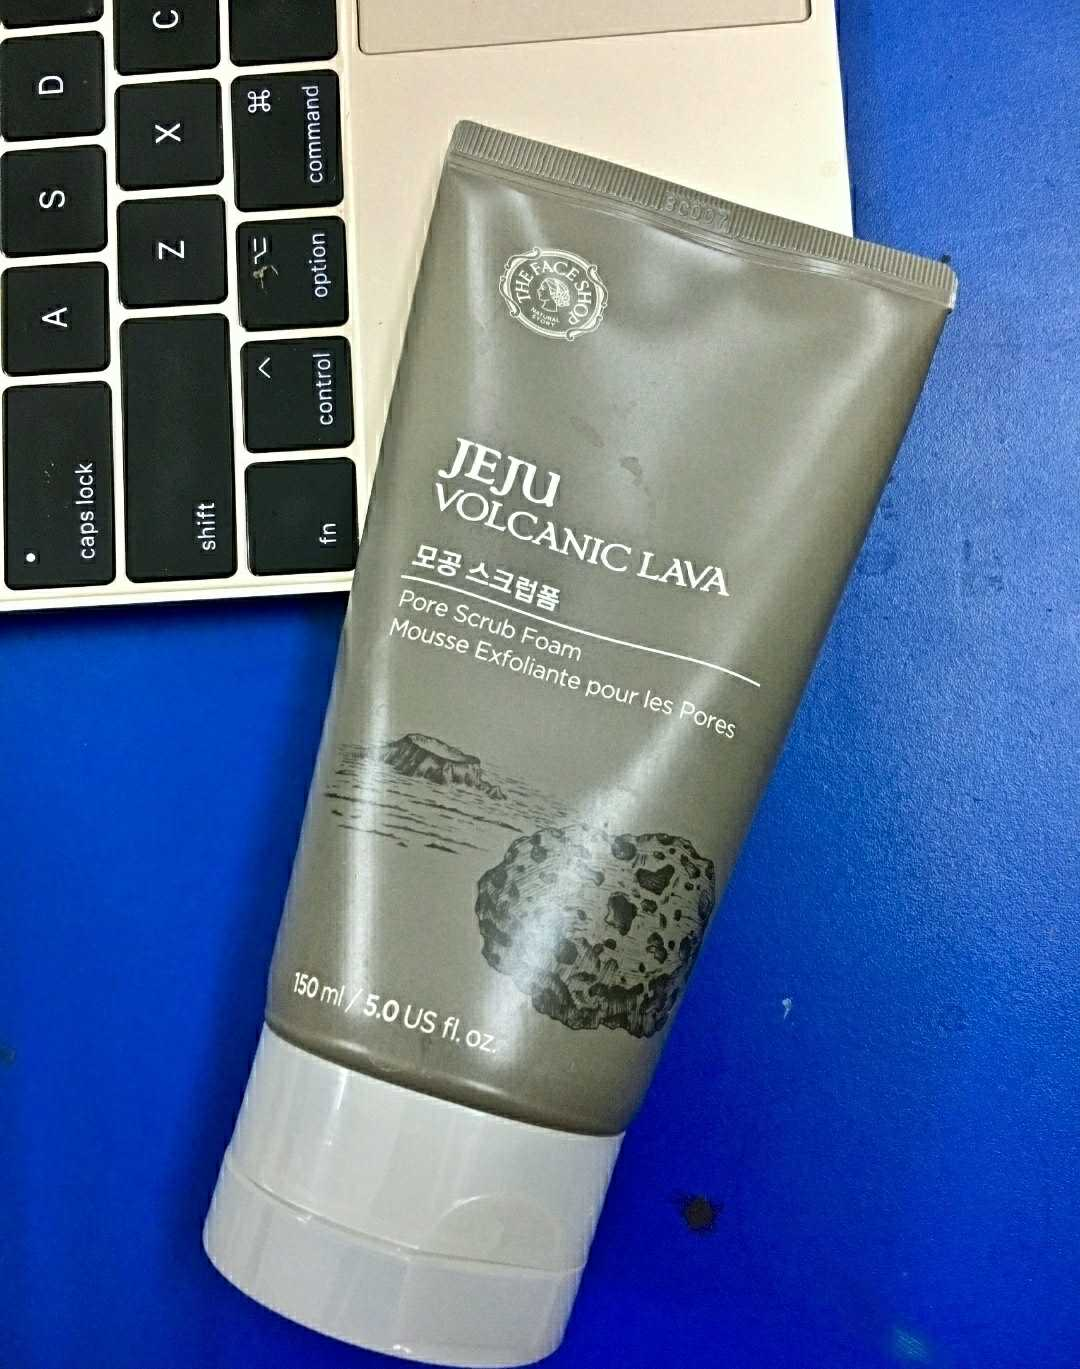 jeju volcanic lava the face shop review